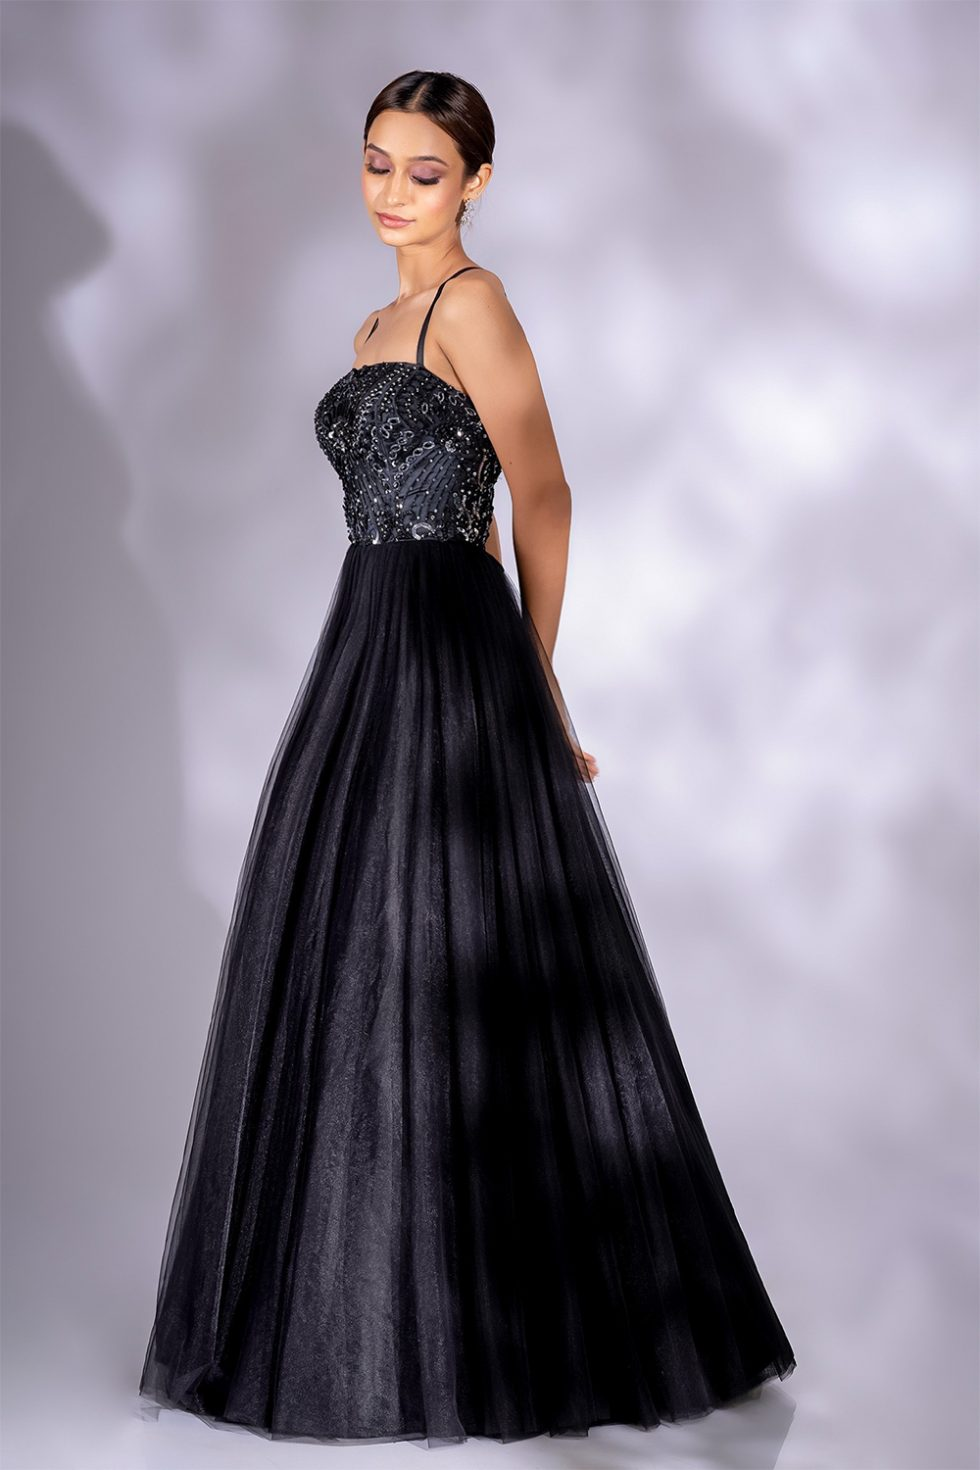 Charcoal black tulle gown set with hand embroidered bodice and silver embellishments.